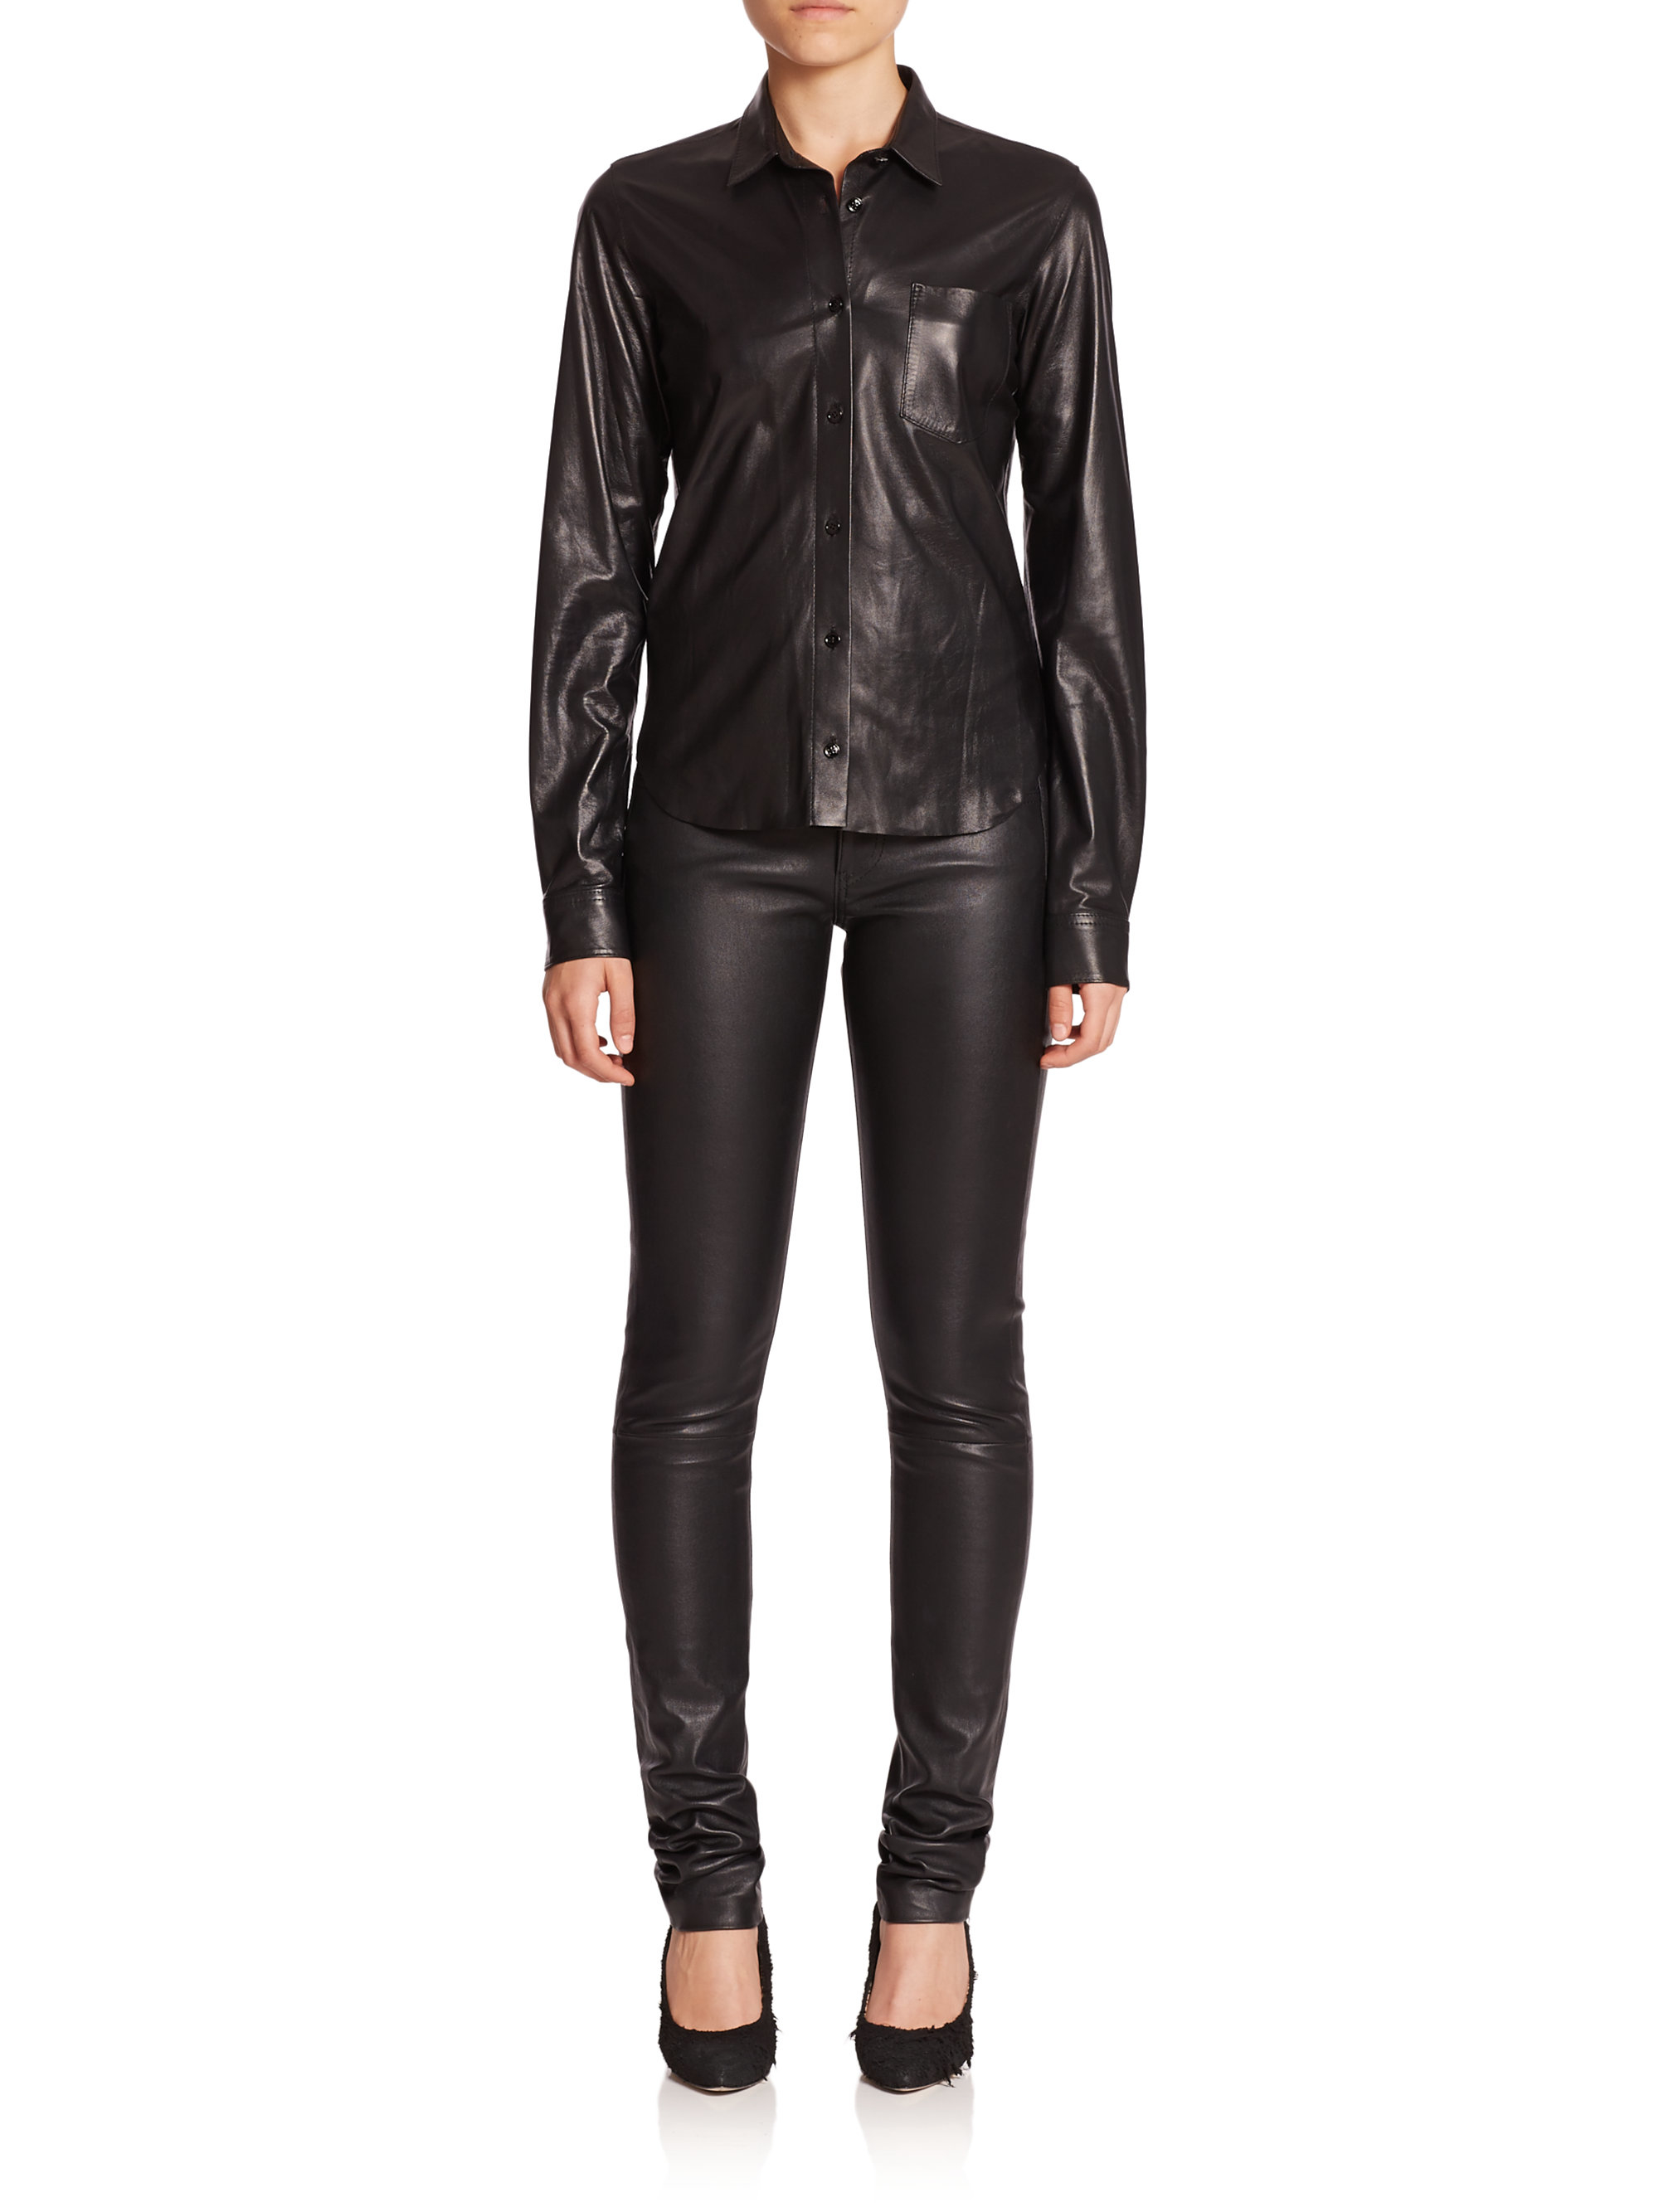 Helmut lang Leather Button-front Shirt in Black